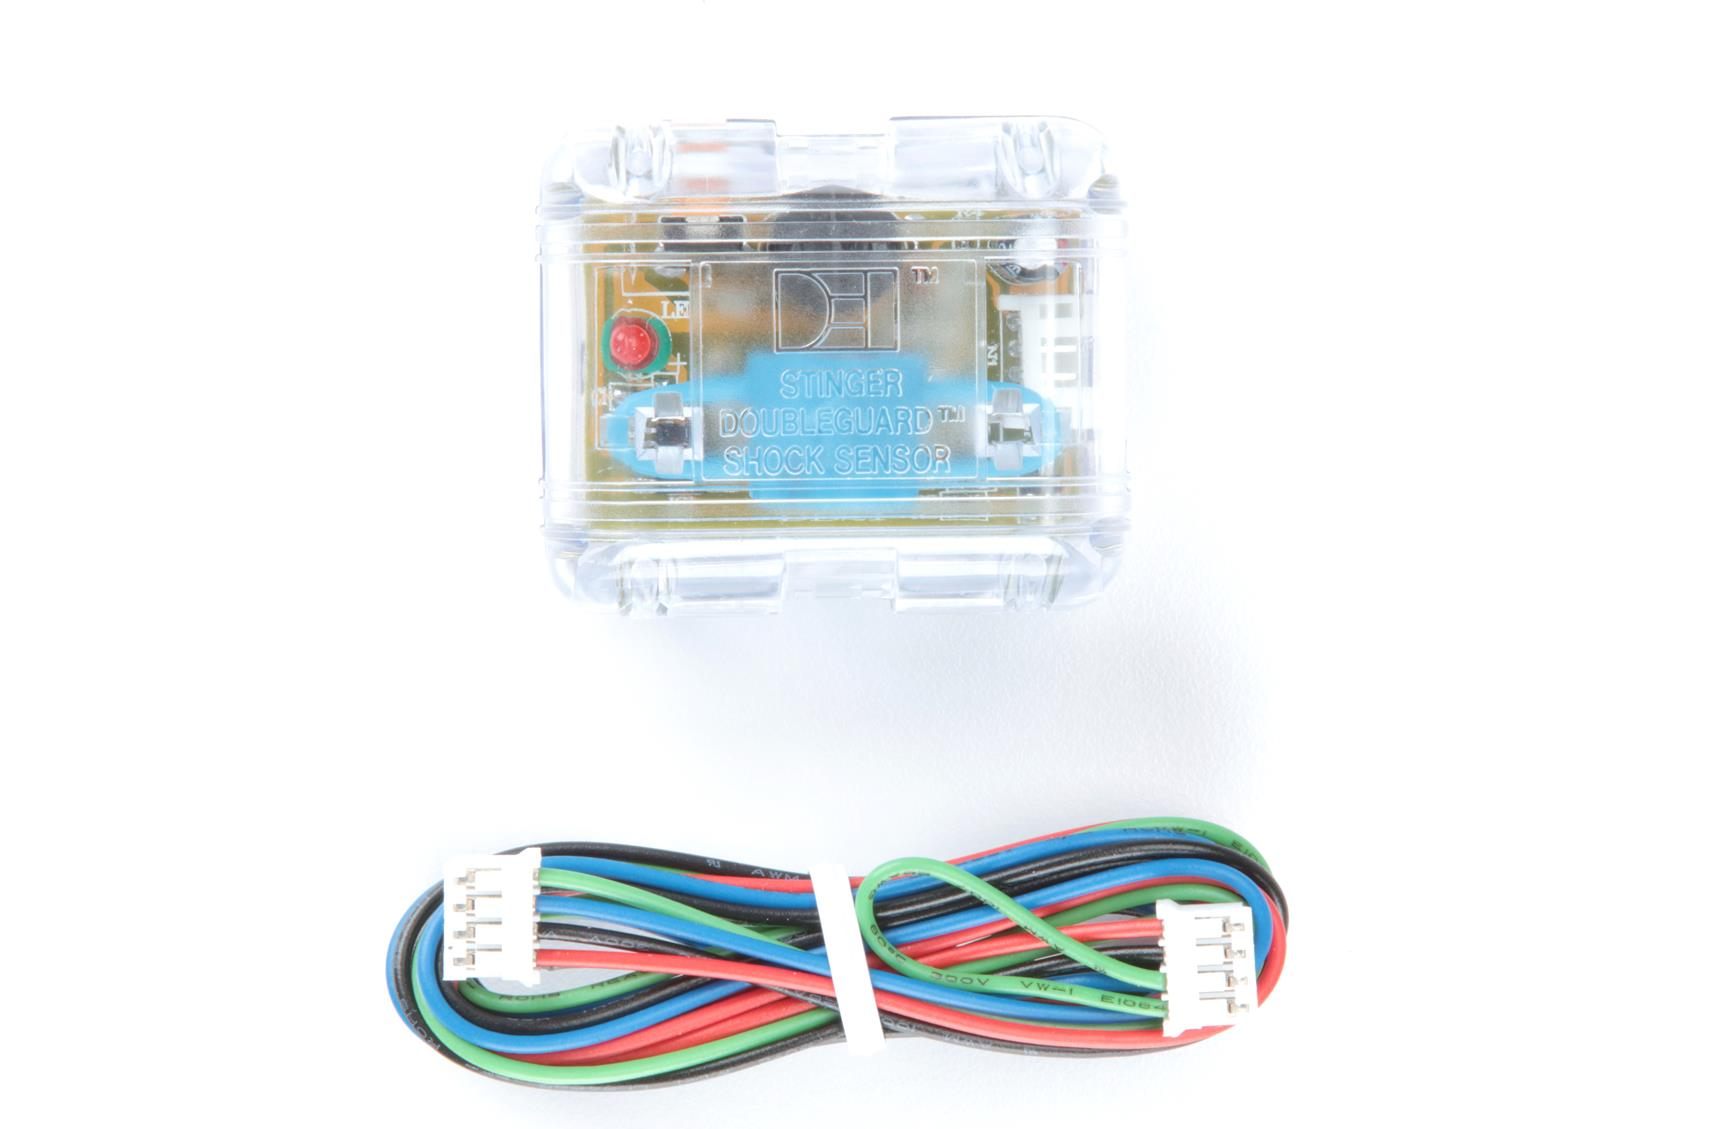 Boss Audio Bv9965i Wiring Harness Solutions Viper Model 5305v 2 Way Car Security And Remote Start System